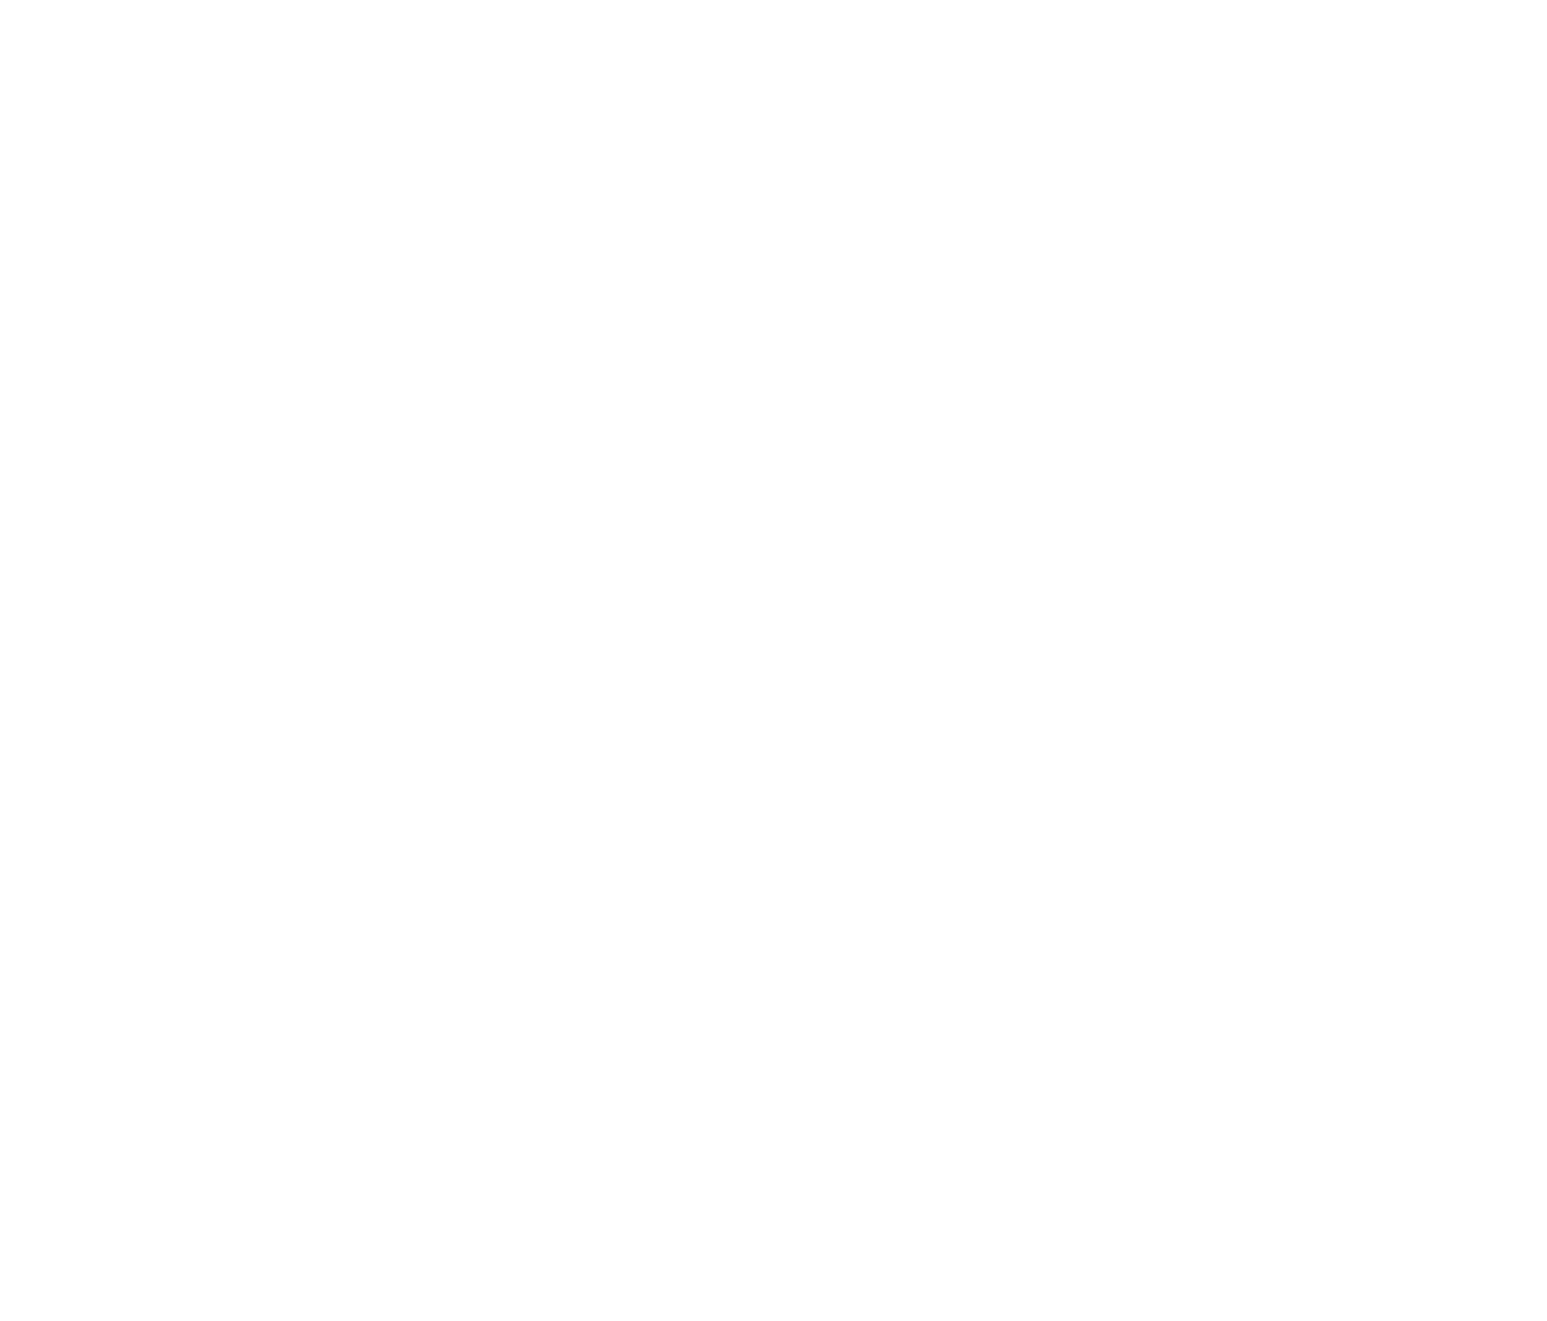 Lina Hayes Photography